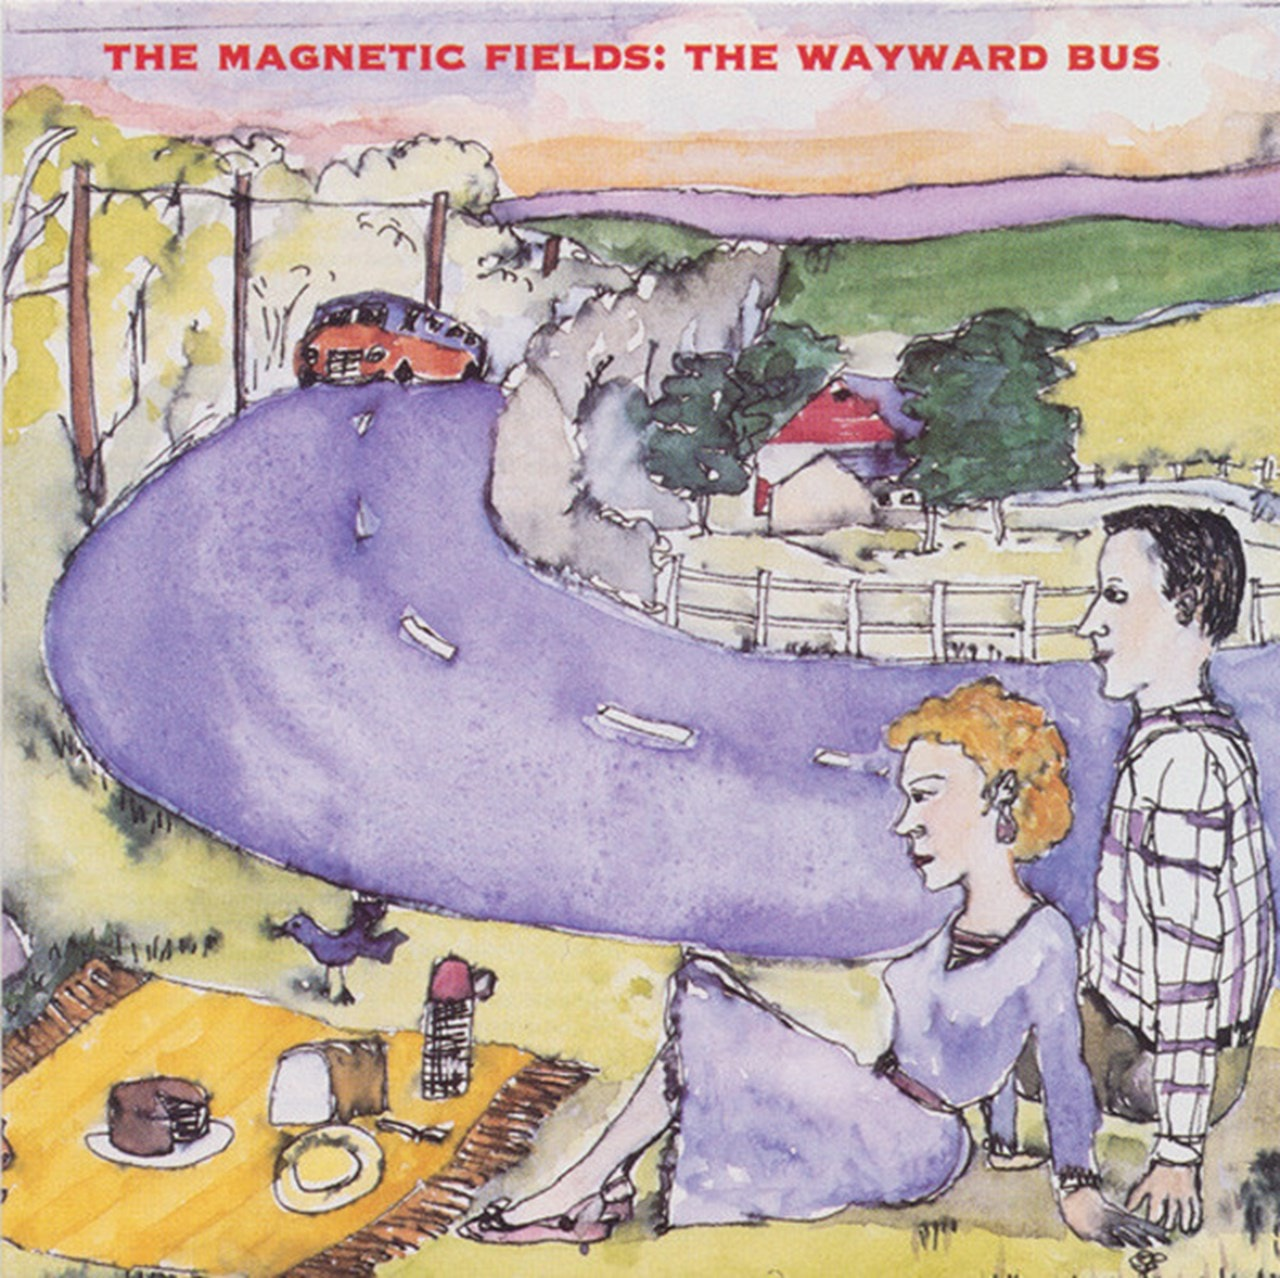 The Wayward Bus/Distant Plastic Trees - 1